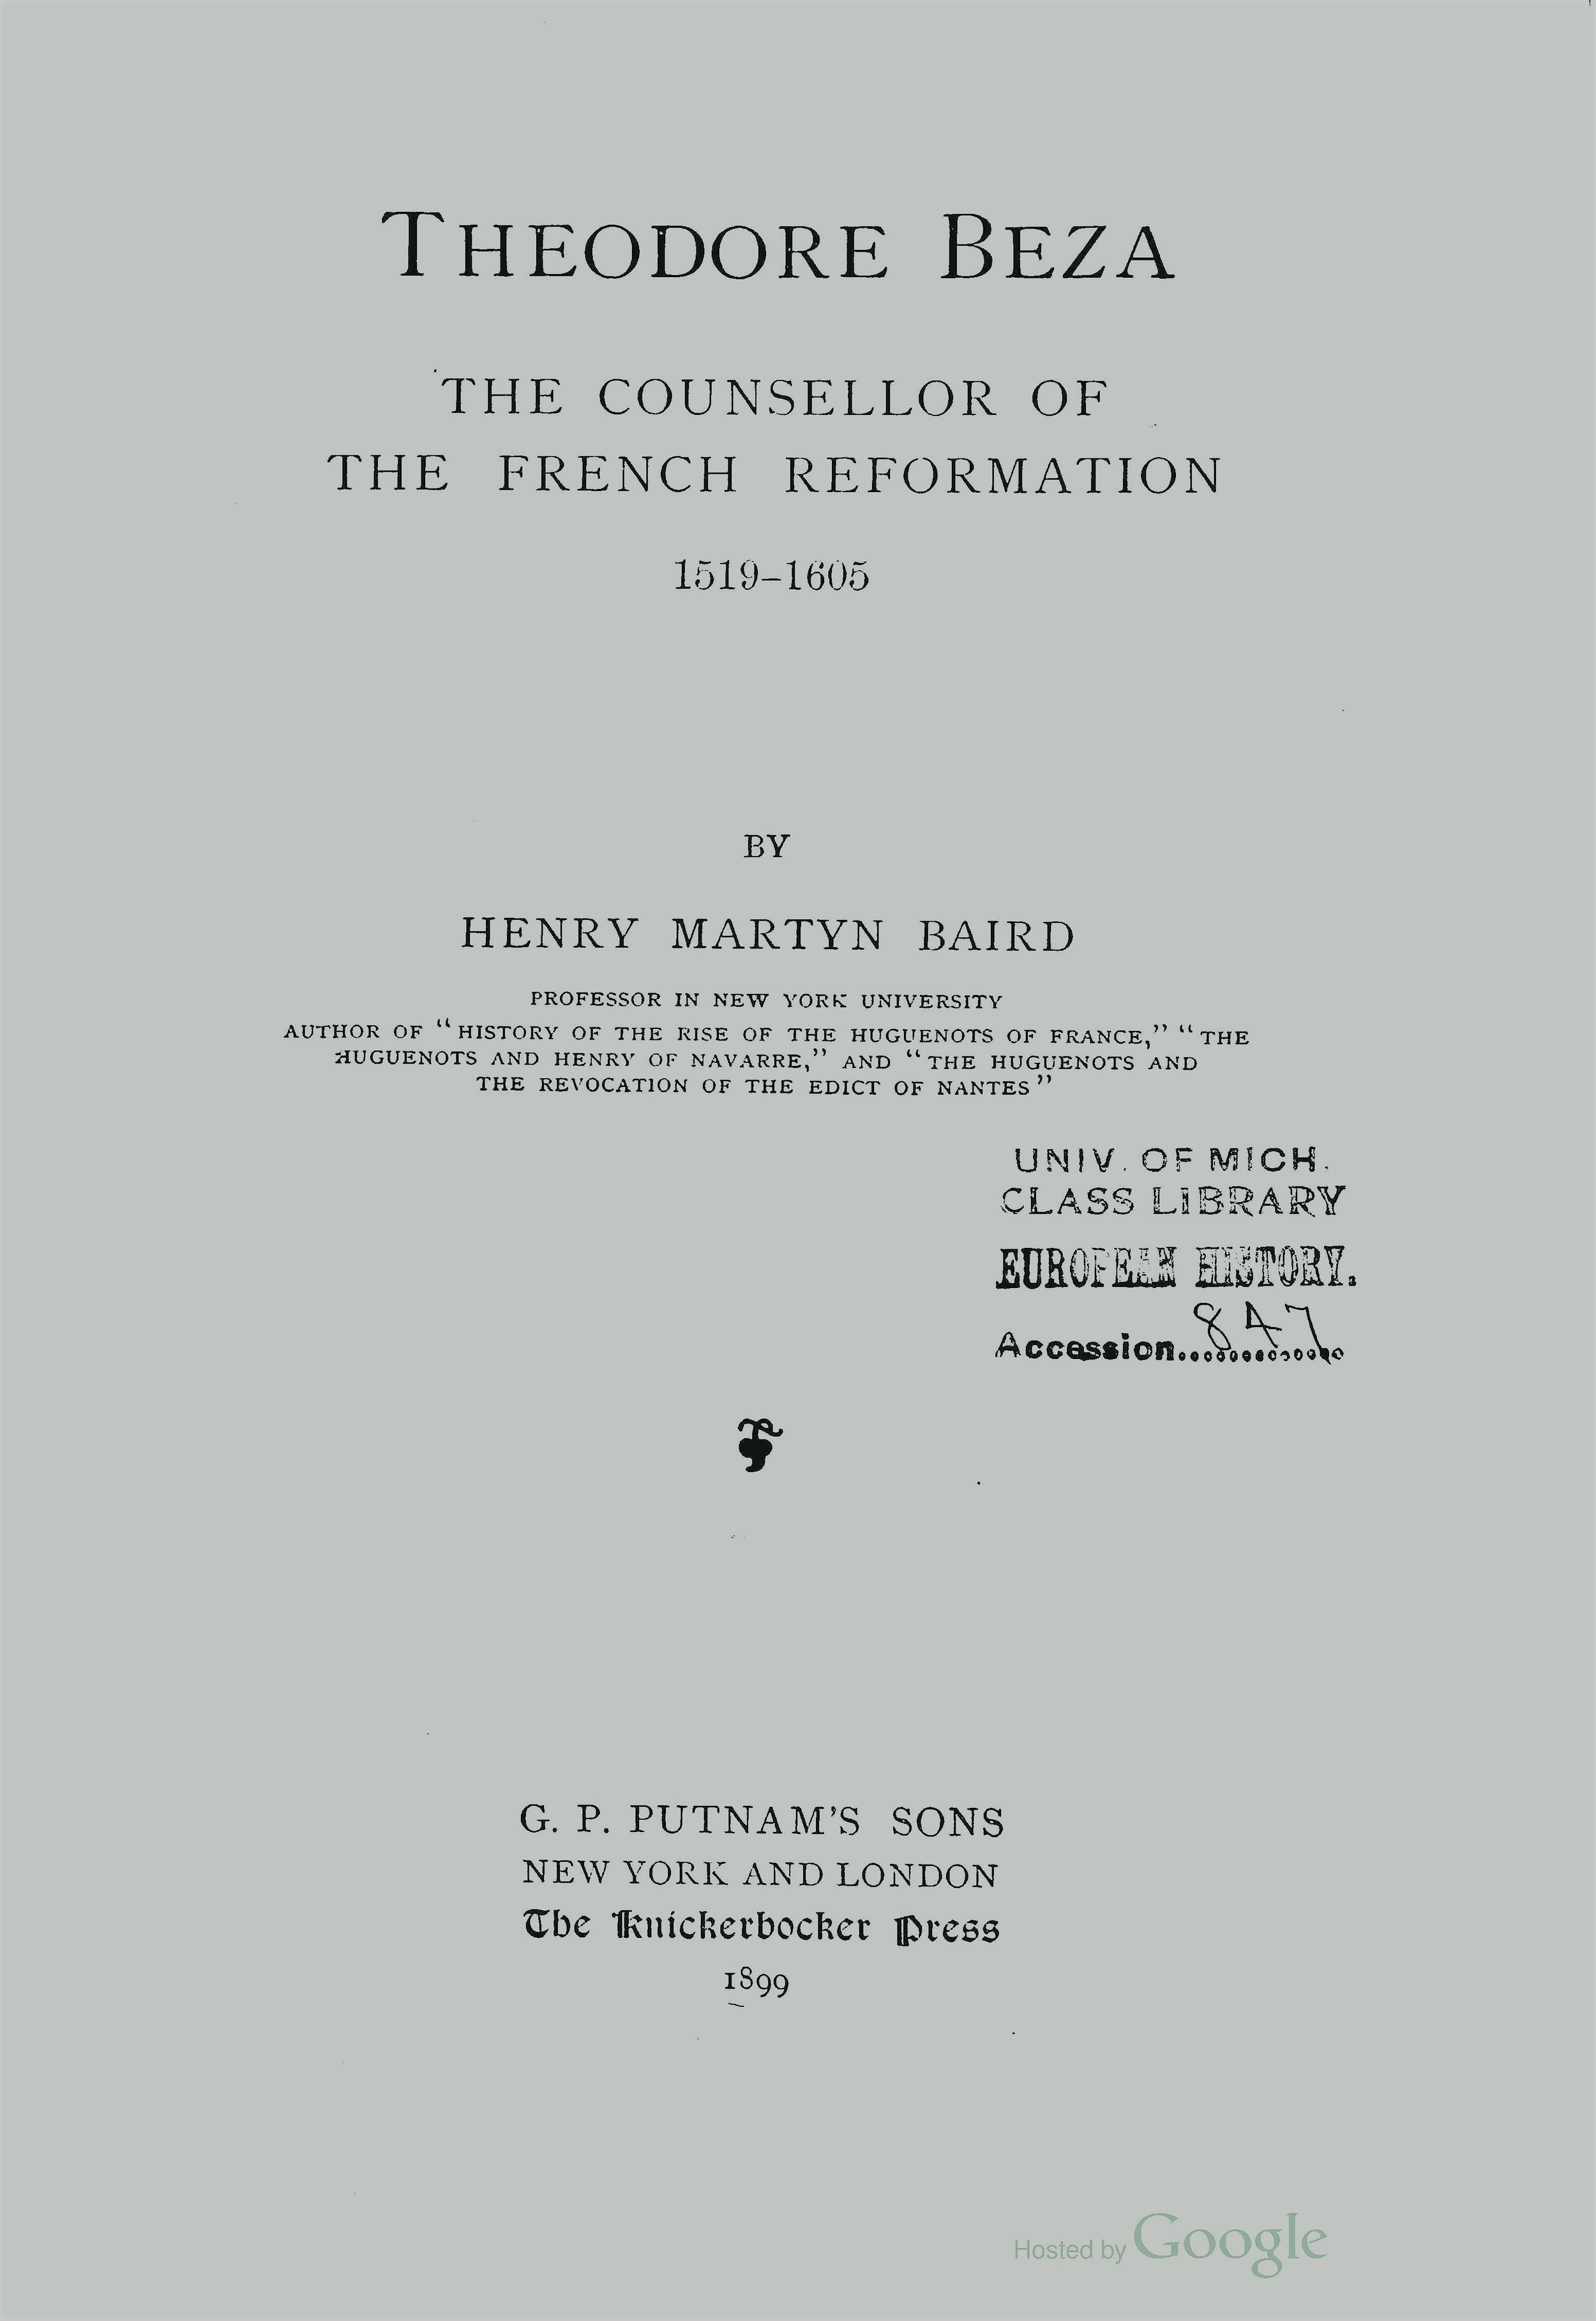 Baird, Henry Martyn, Theodore Beza - The Counsellor of the French Reformation, 1519-1605 Title Page.jpg